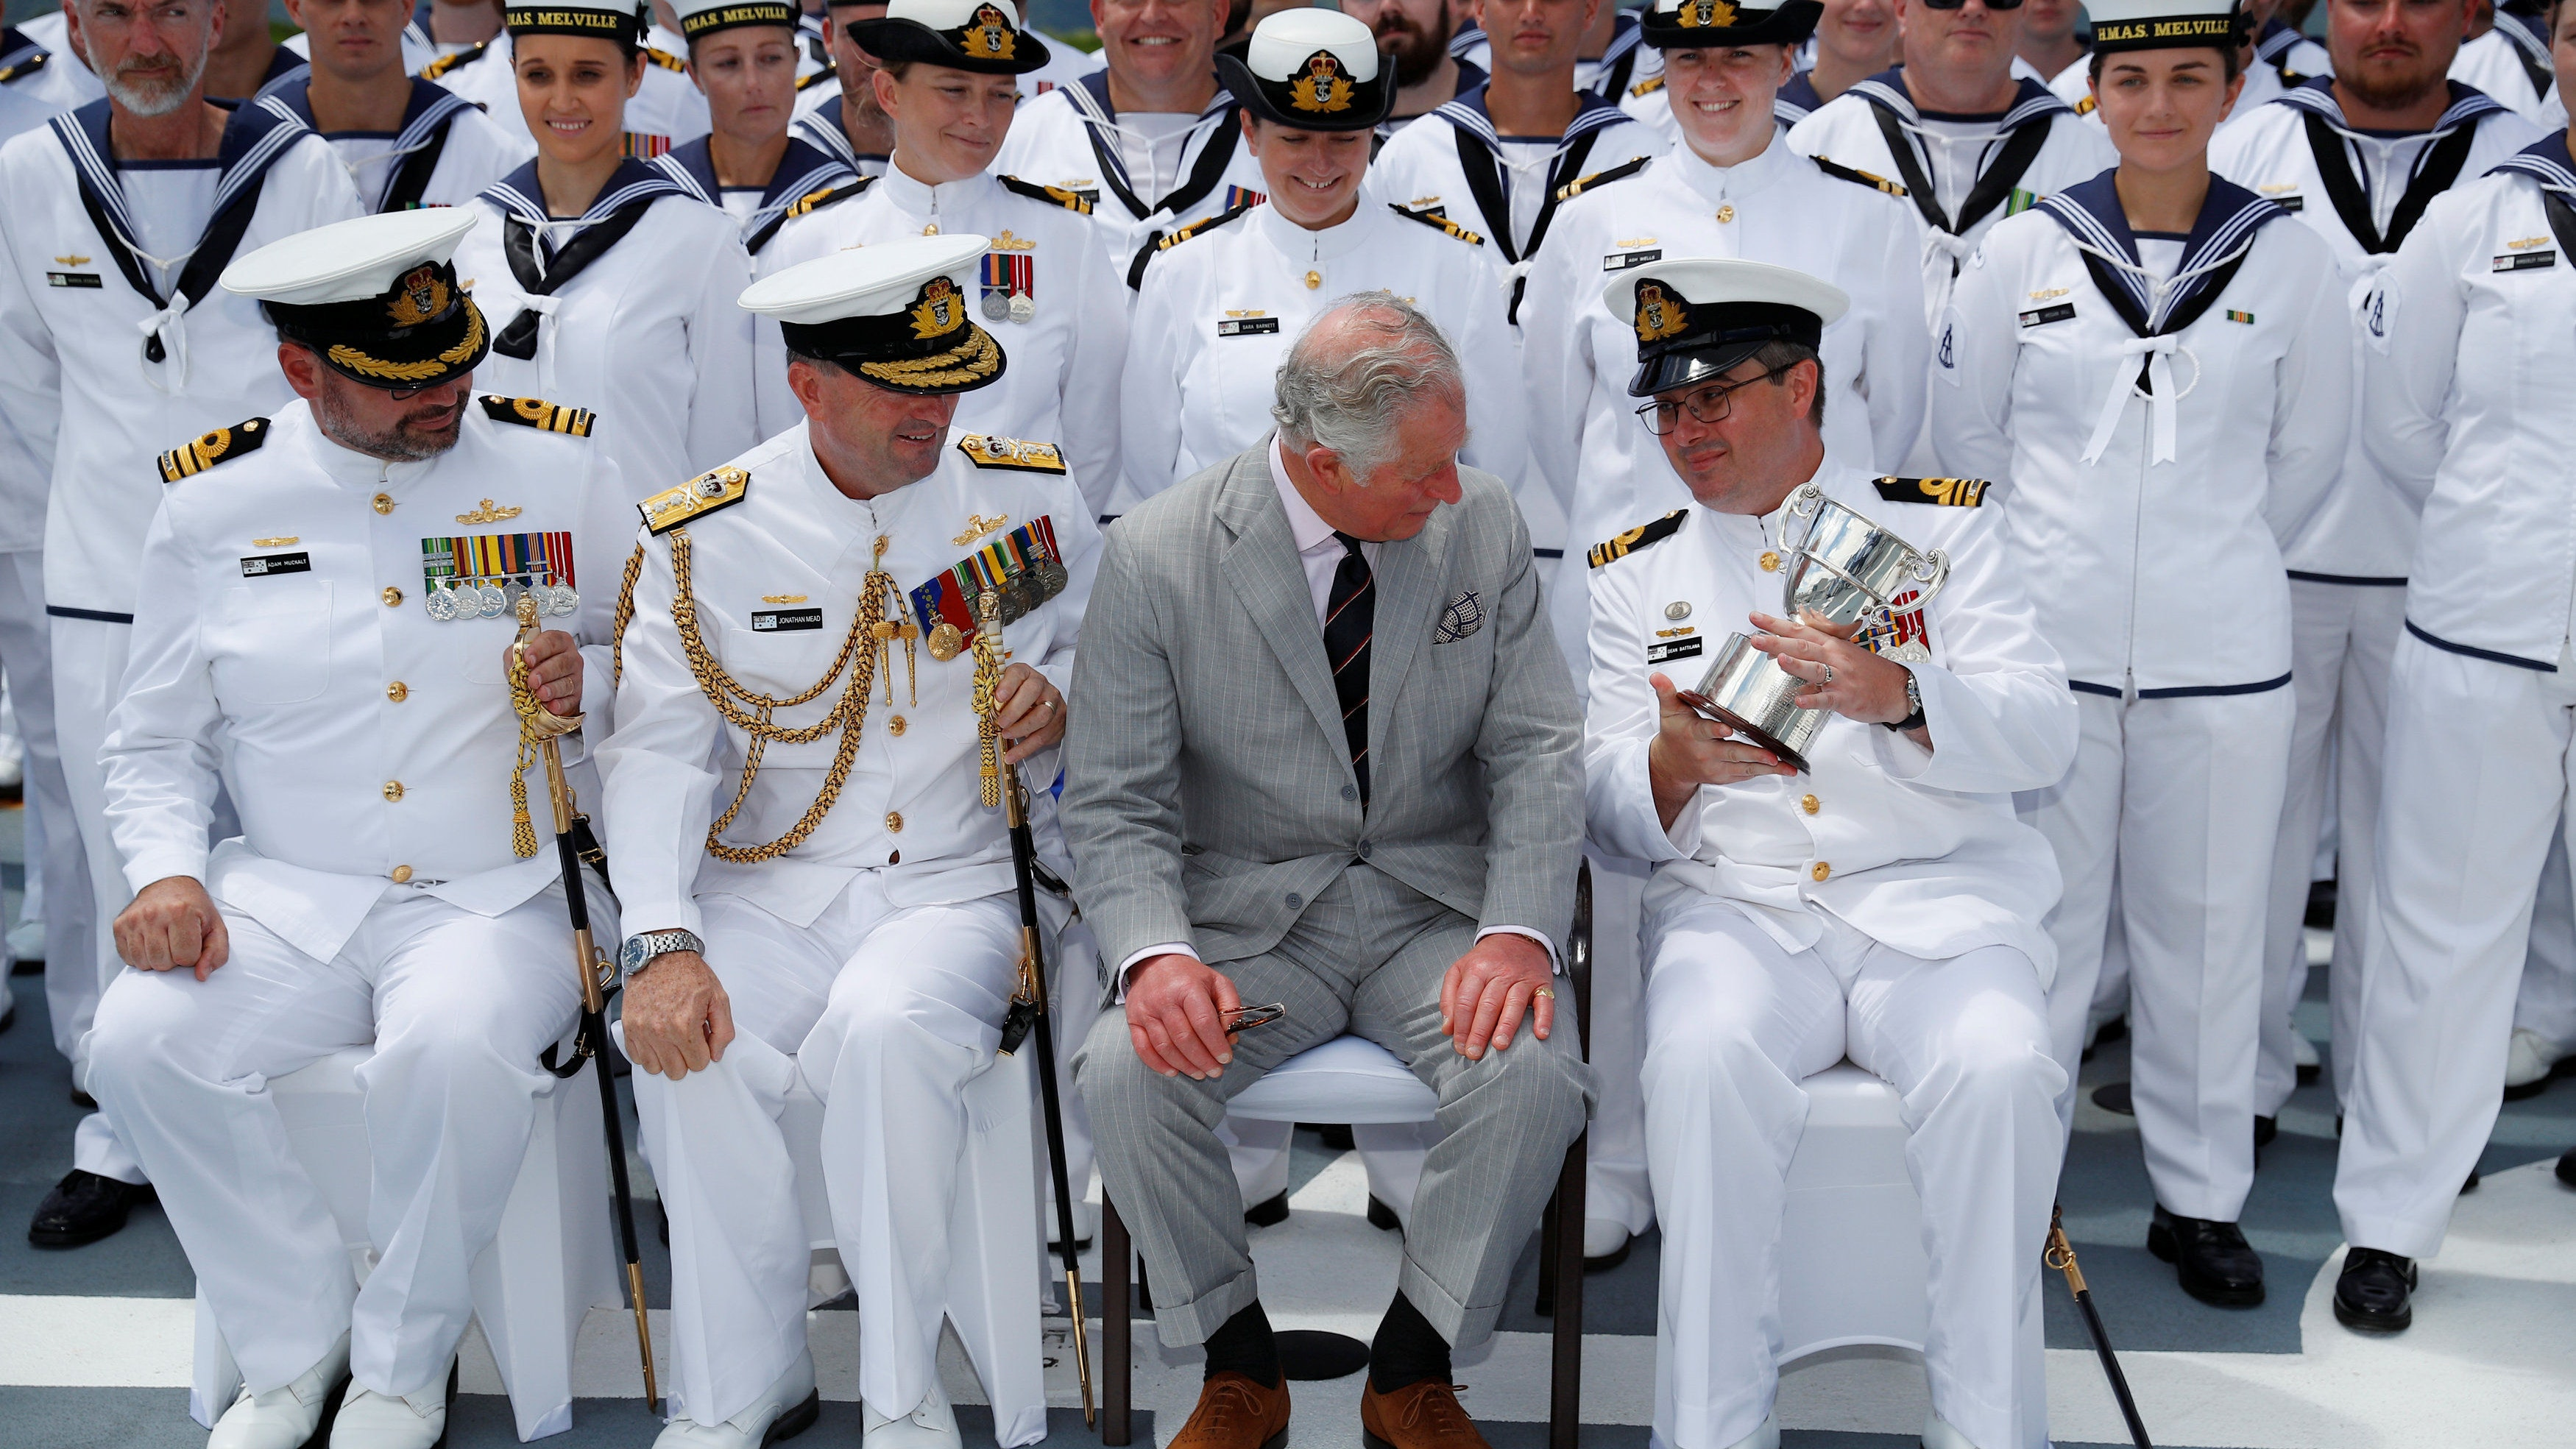 In Pictures: Charles on board with Royal Australian Navy | BT